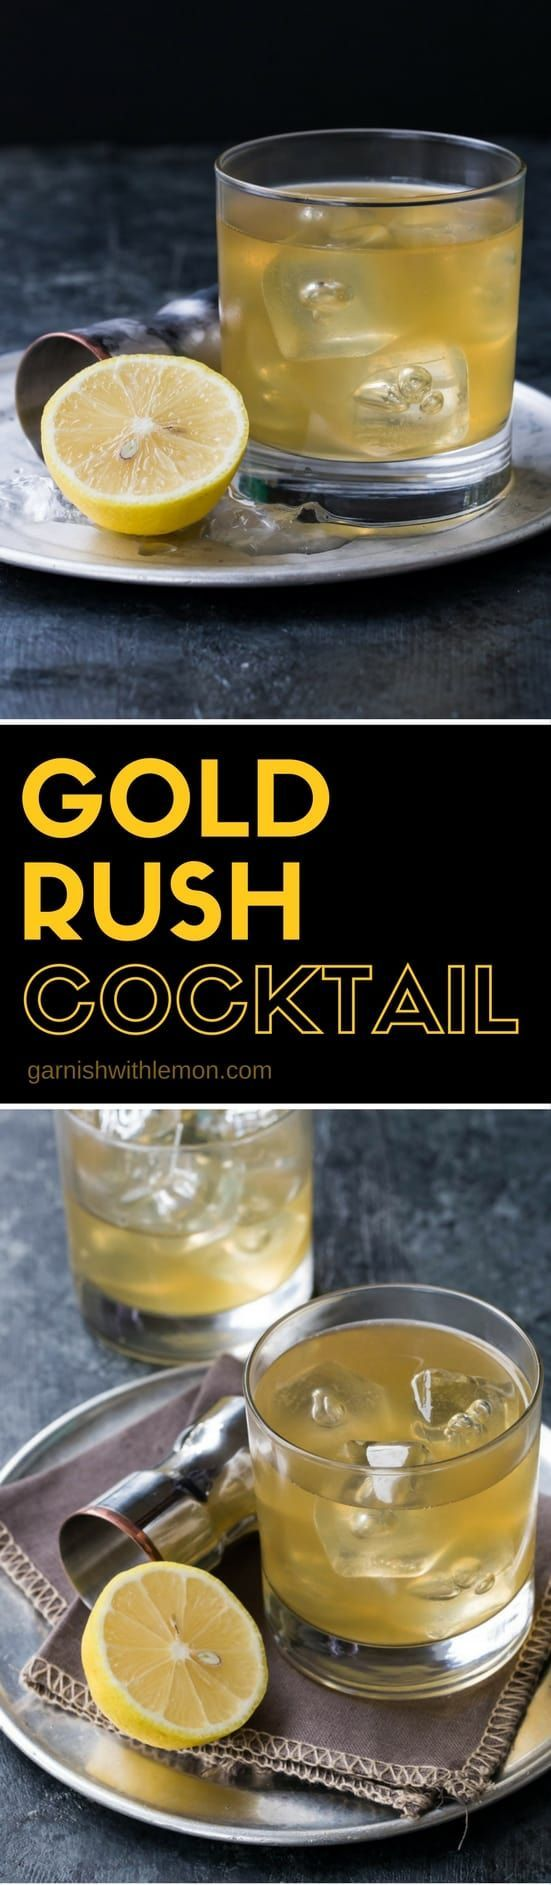 The Gold Rush Cocktail is our favorite fall sipper, filled with belly-warming bourbon, ginger liqueur and fresh lemon juice.  #bourbon #cocktails #ginger #lemon #drinks #goldrush #easyentertaining#cocktail